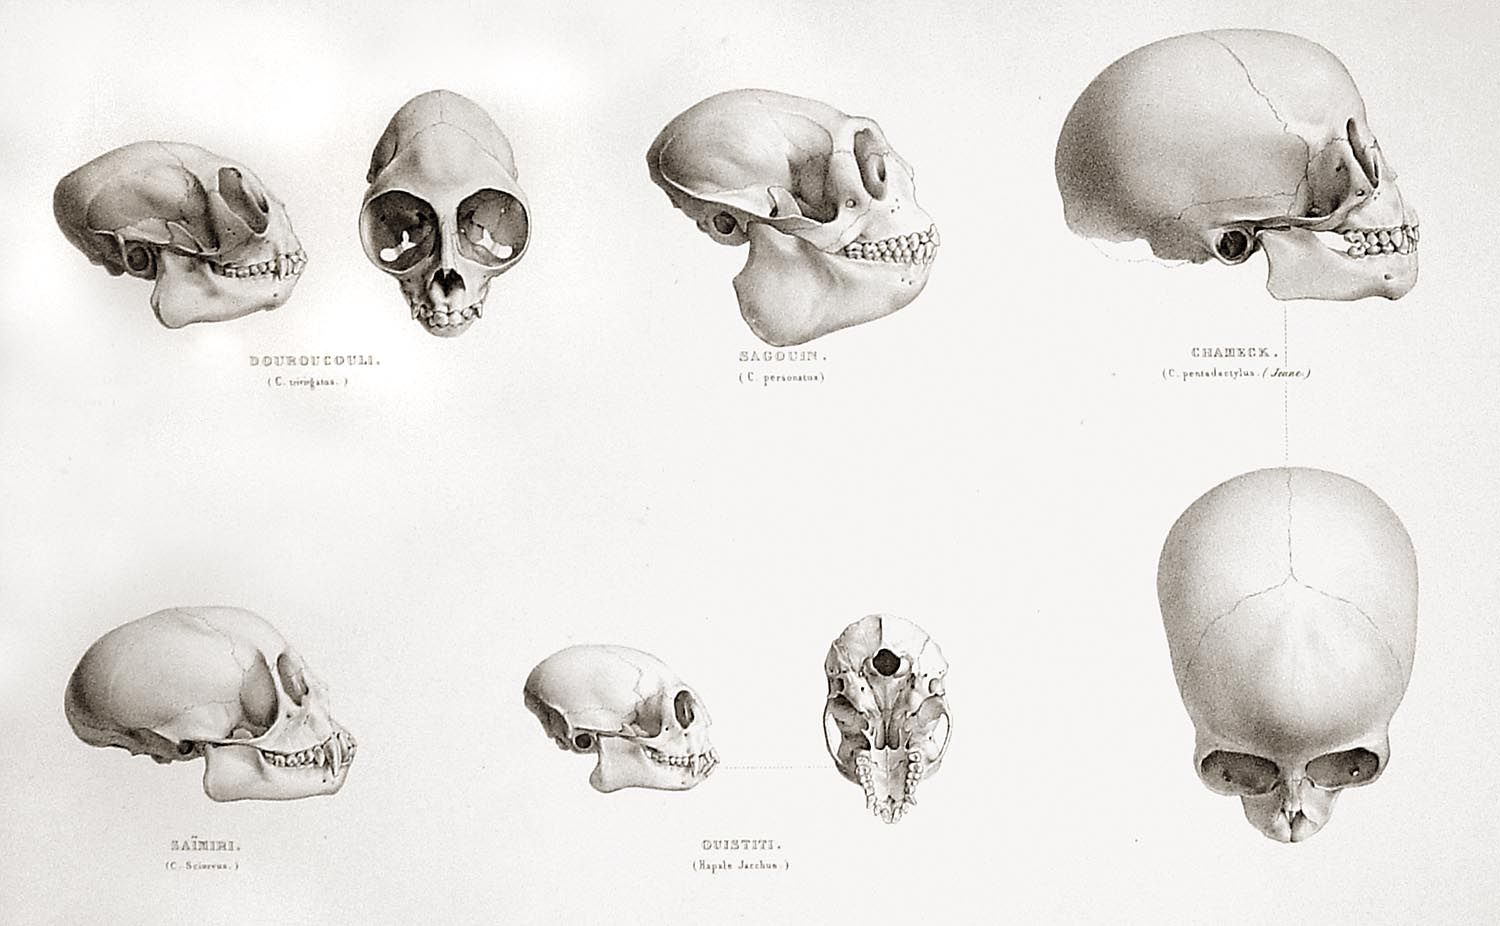 medium resolution of the skulls of a night monkey top left an atlantic titi top